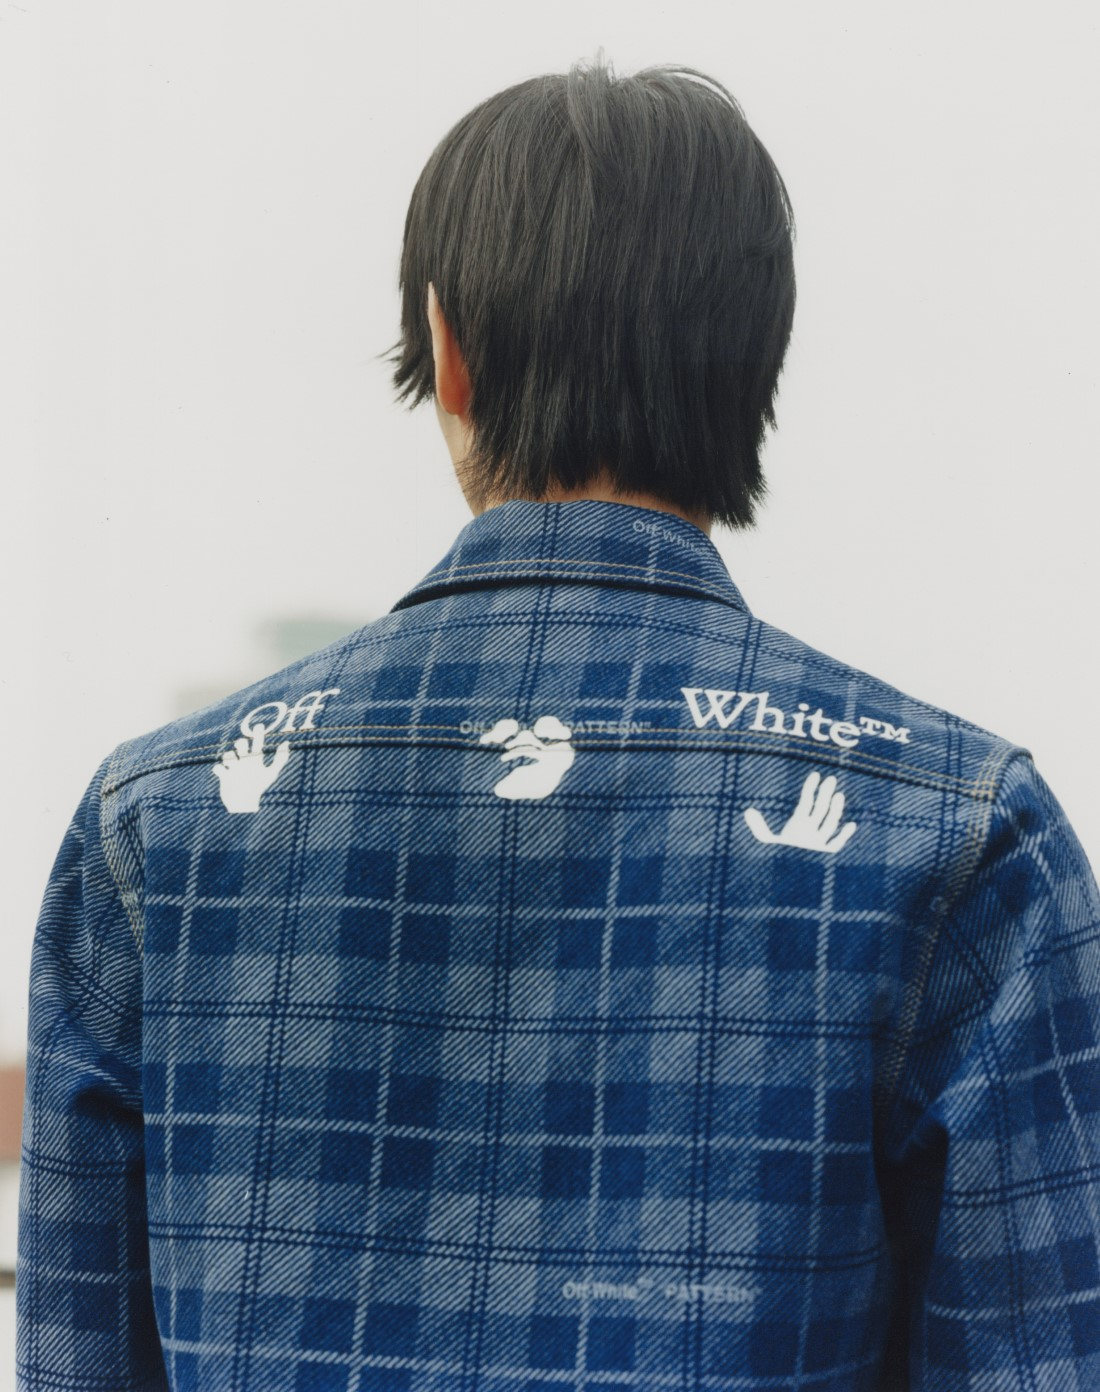 Off-White x WeChat